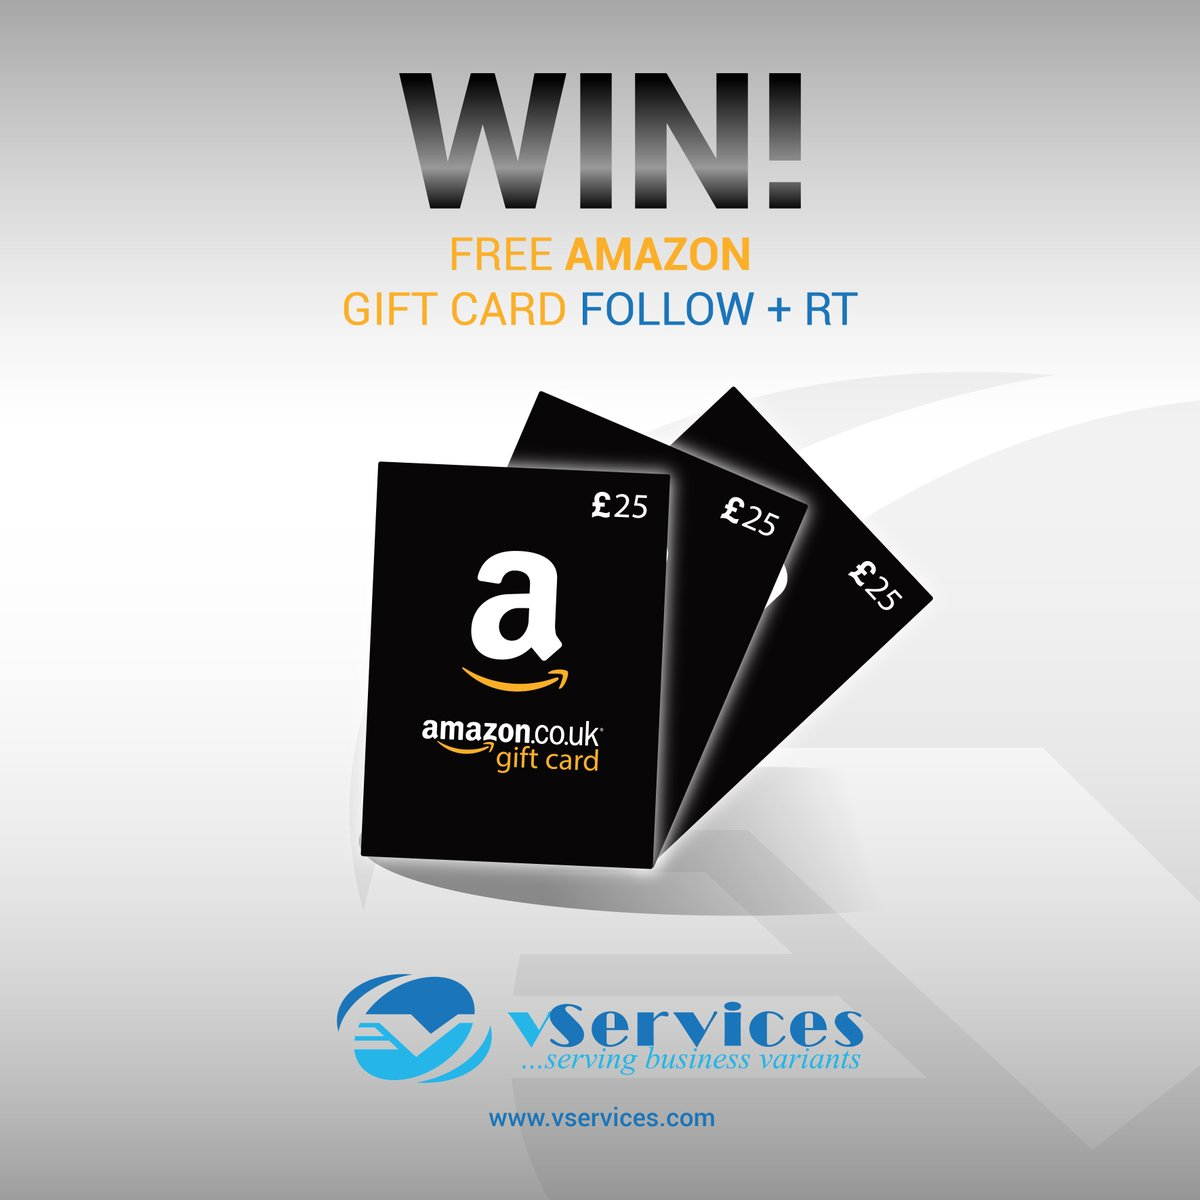 #FreebieFriday #giveaway #win a £25 #AmazonGiveaway #gift card #like + #retweet #follow &amp; Visit our #vServices website for IT Services query End 12am 04/22 #prize #Competition #FridayFeeling #ff For Free Consultation For IT Services  https://www. vservices.com/free-consultat ion &nbsp; … <br>http://pic.twitter.com/sLaeKc4QmQ